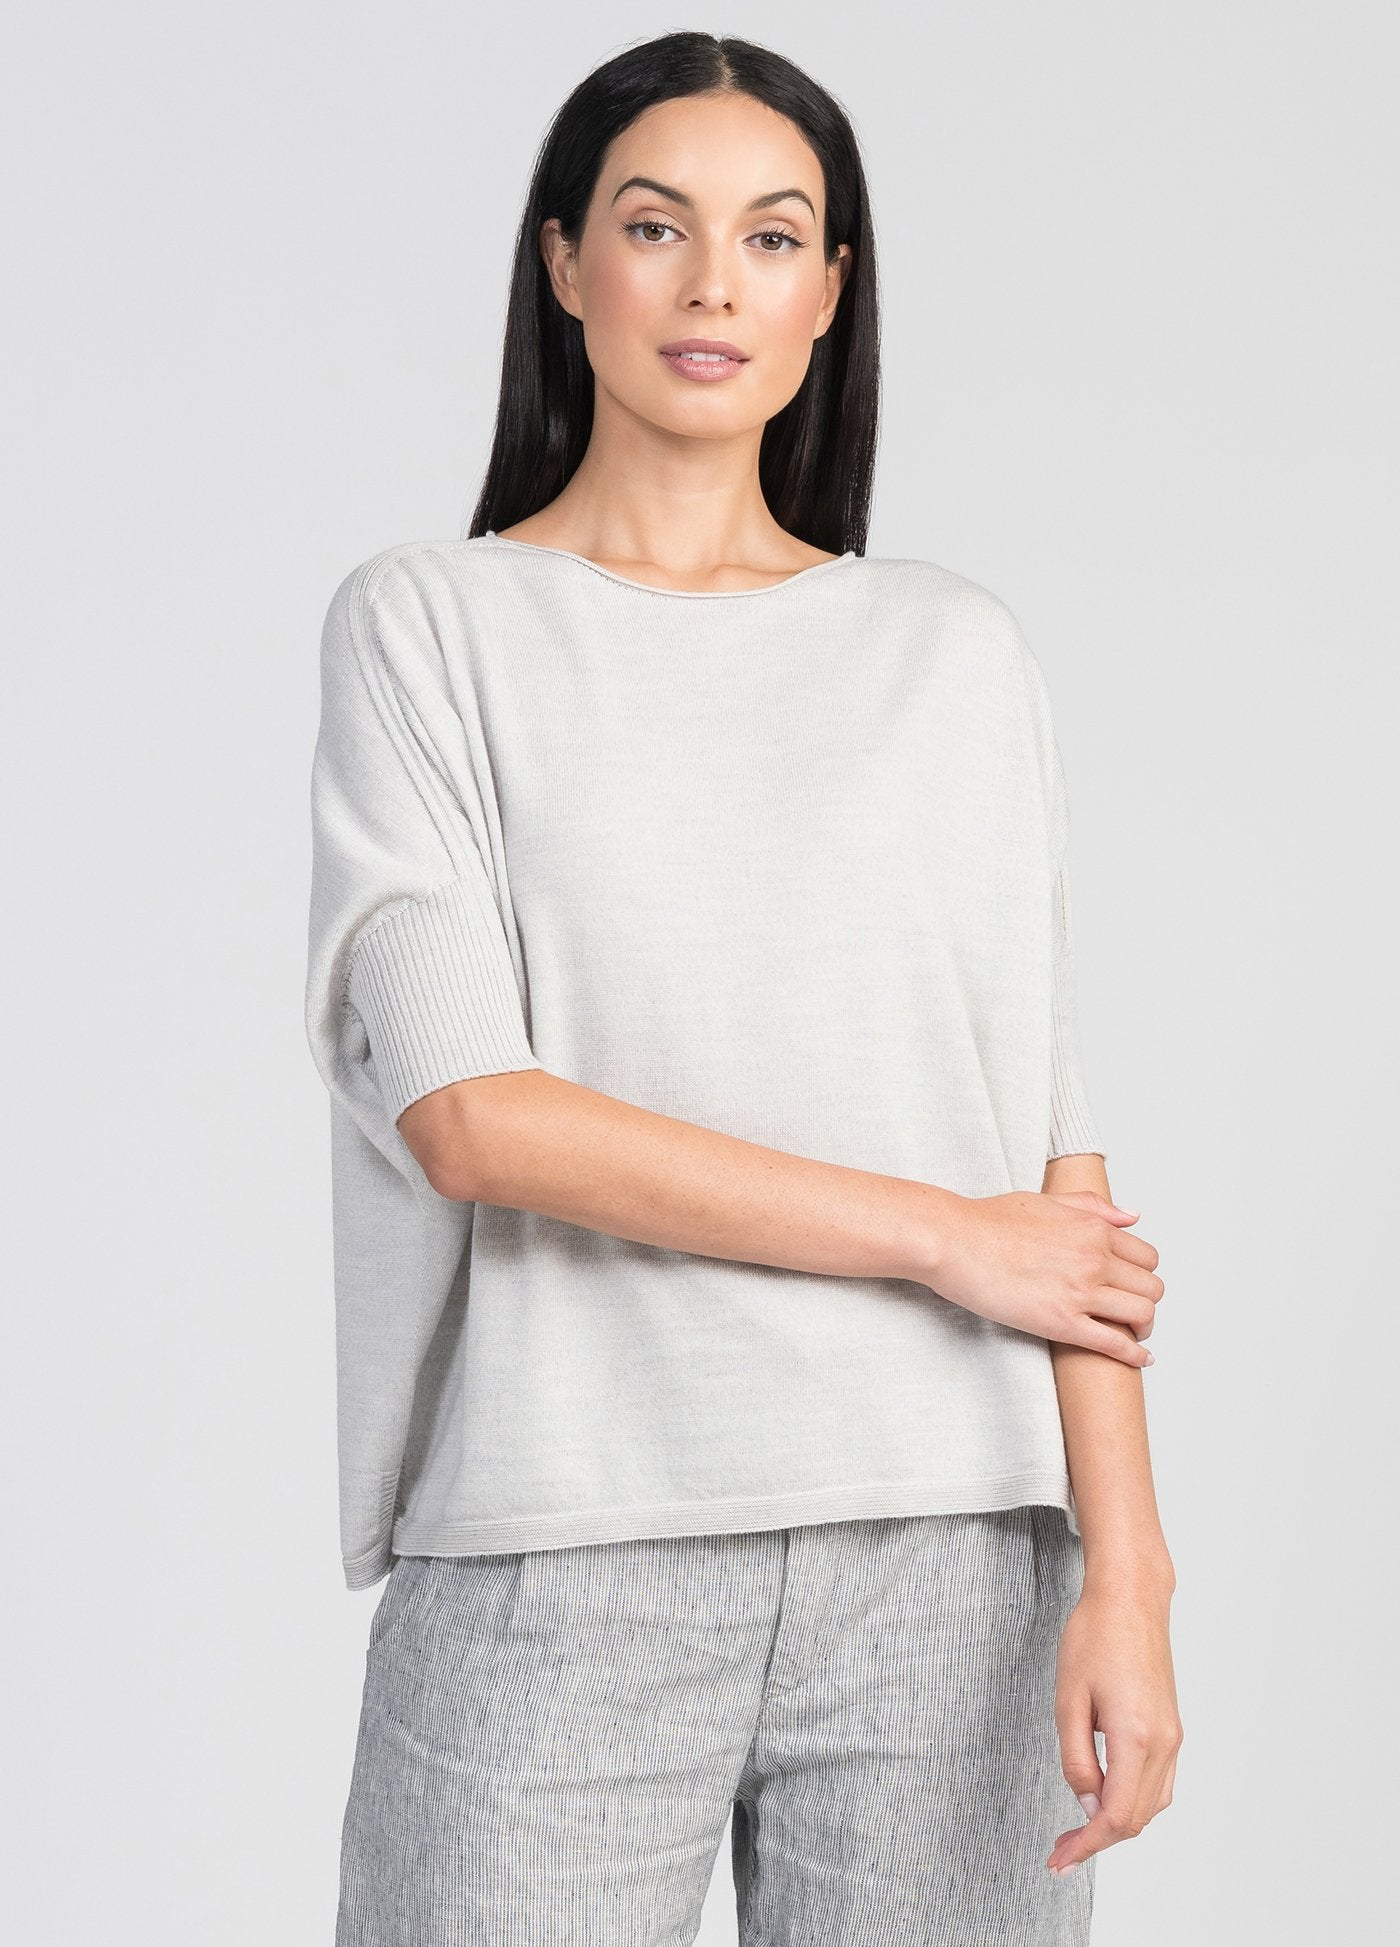 EASY KNIT TEE - Woolshed Gallery